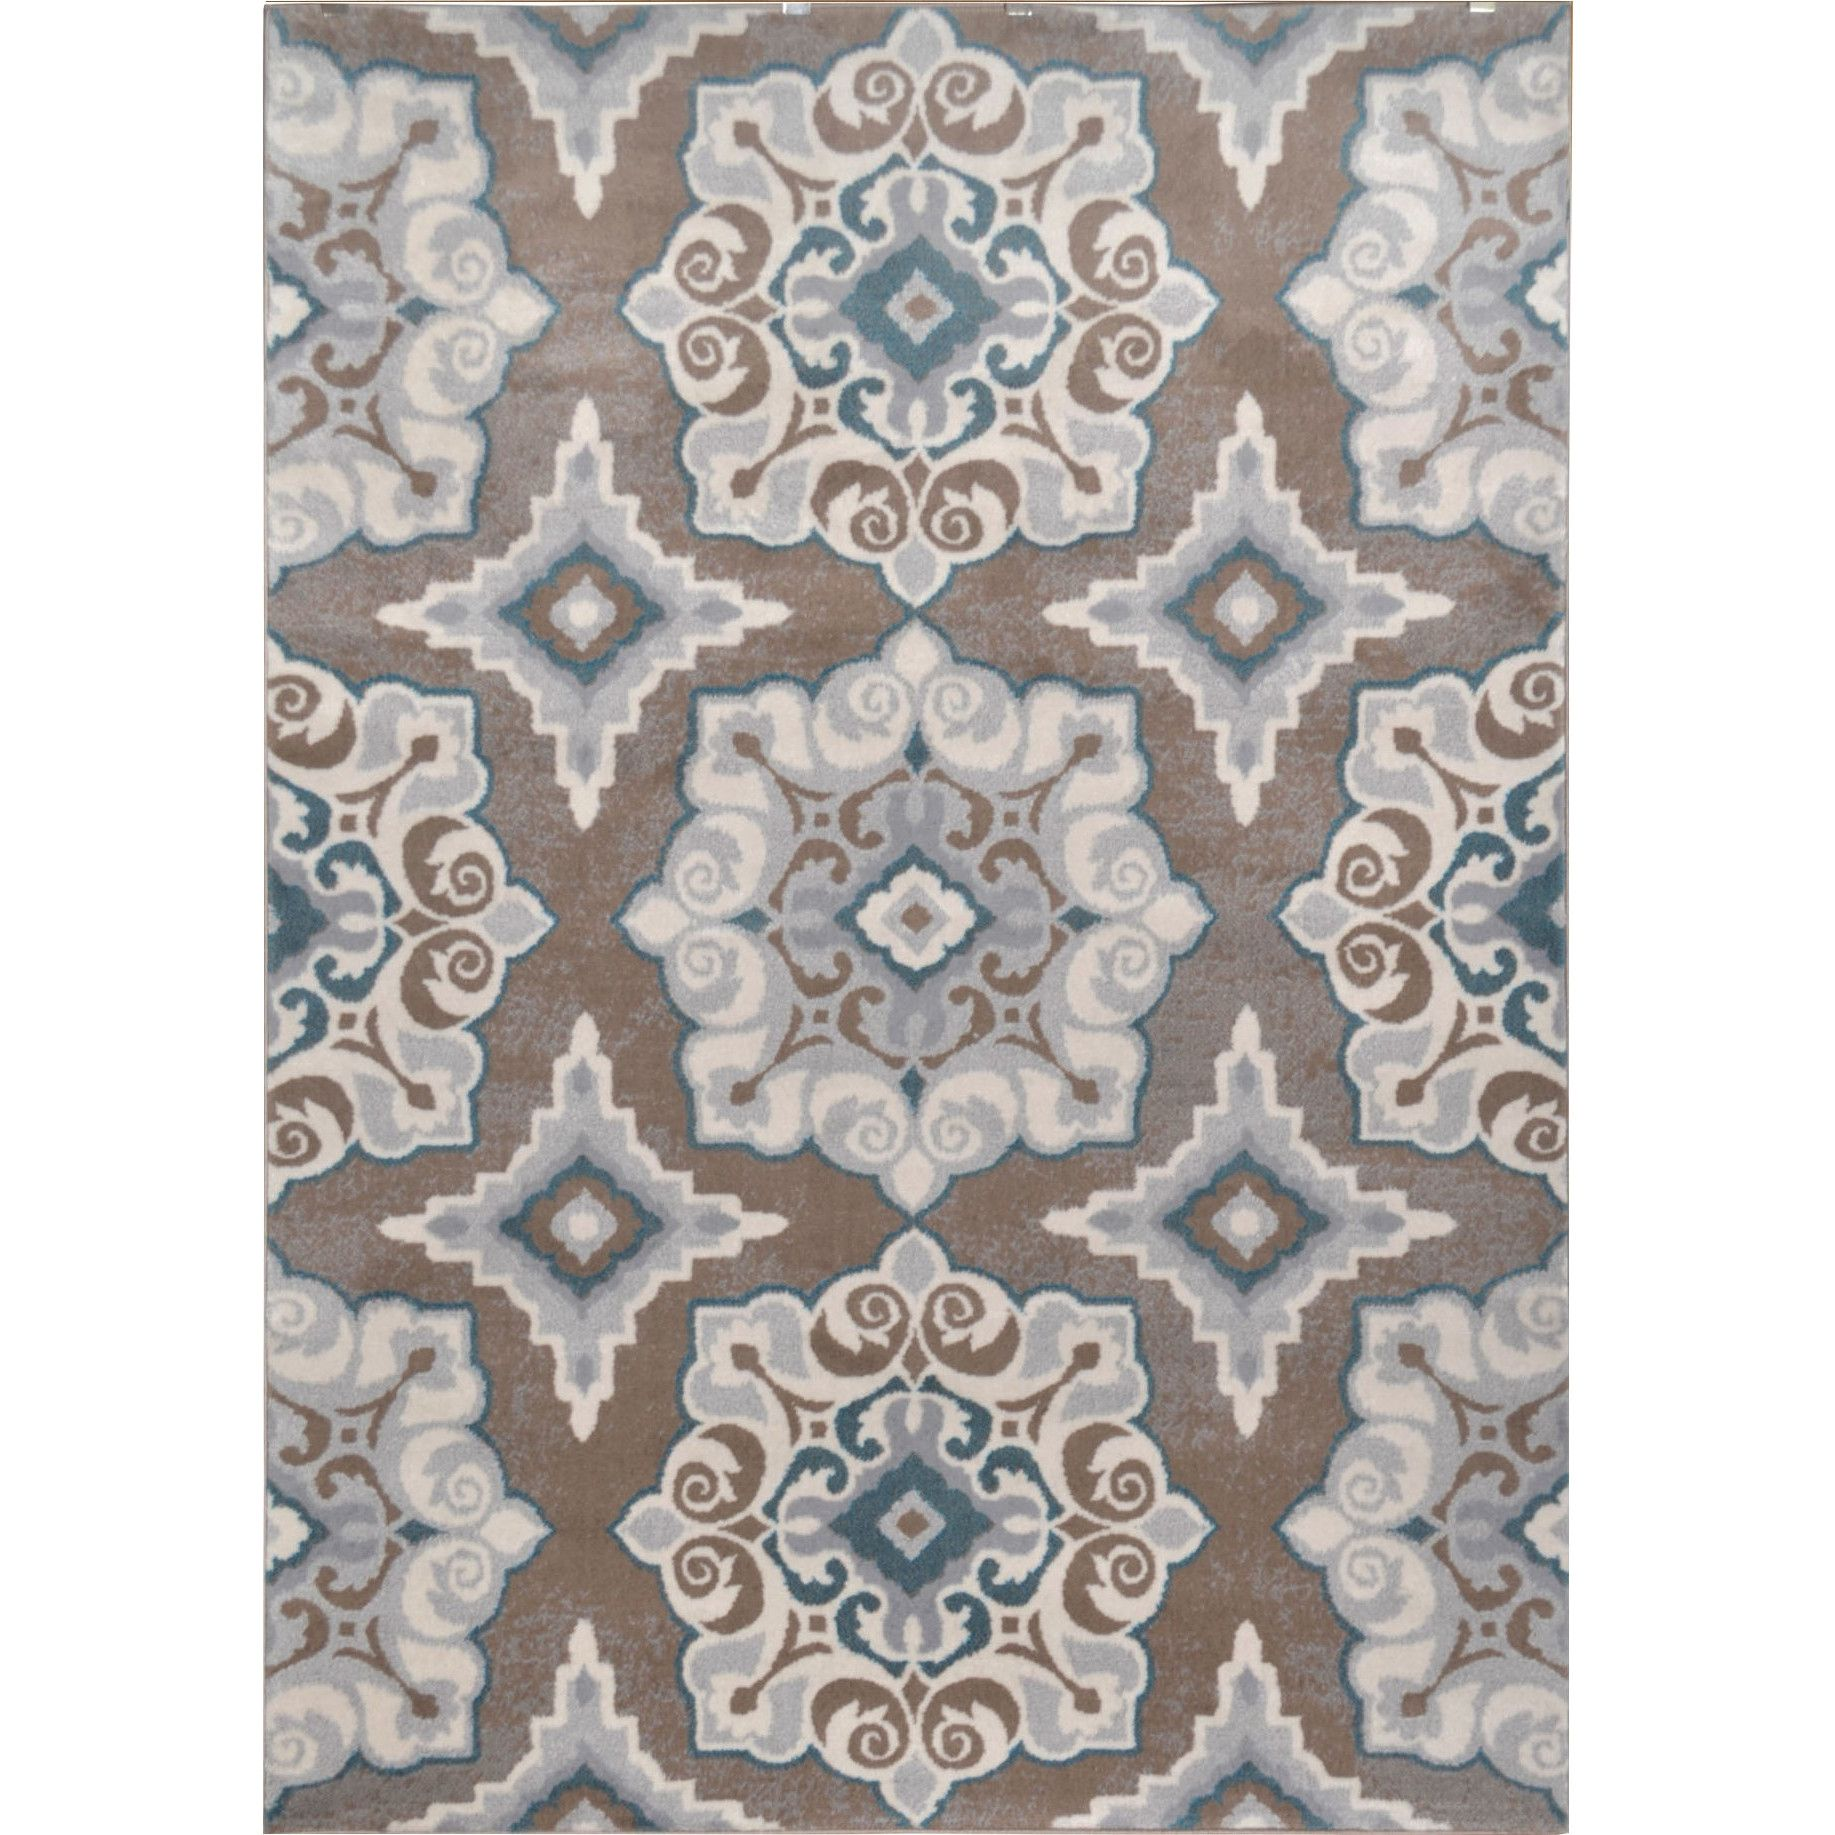 7X7 Area Rugs For Dining Room Shop Wayfair For Area Rugs To Match Every Style And Budgetenjoy